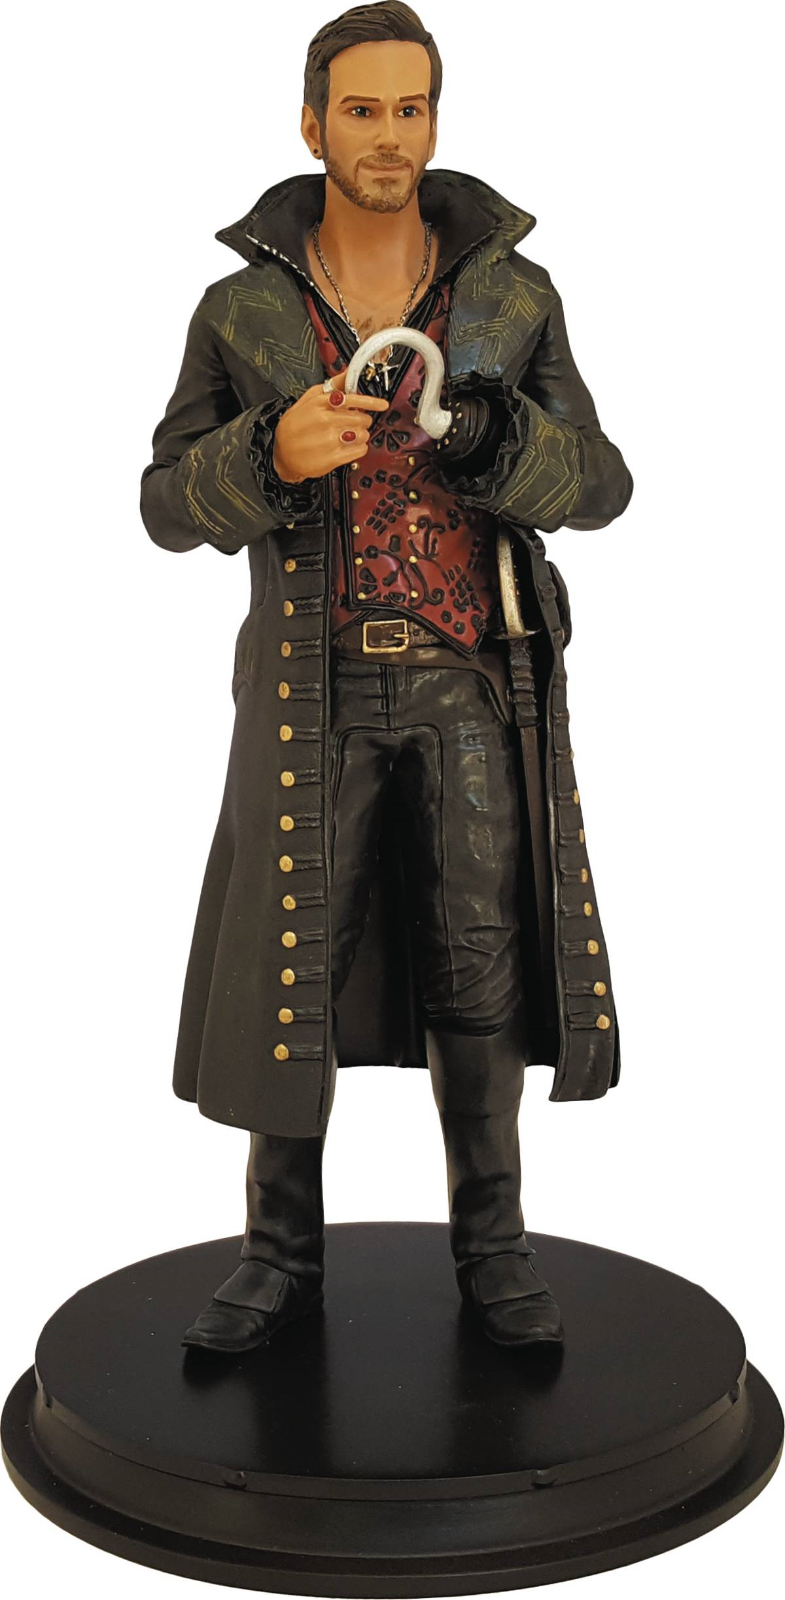 Unce Upon A Time Hook PX Statue by Icon Heroes